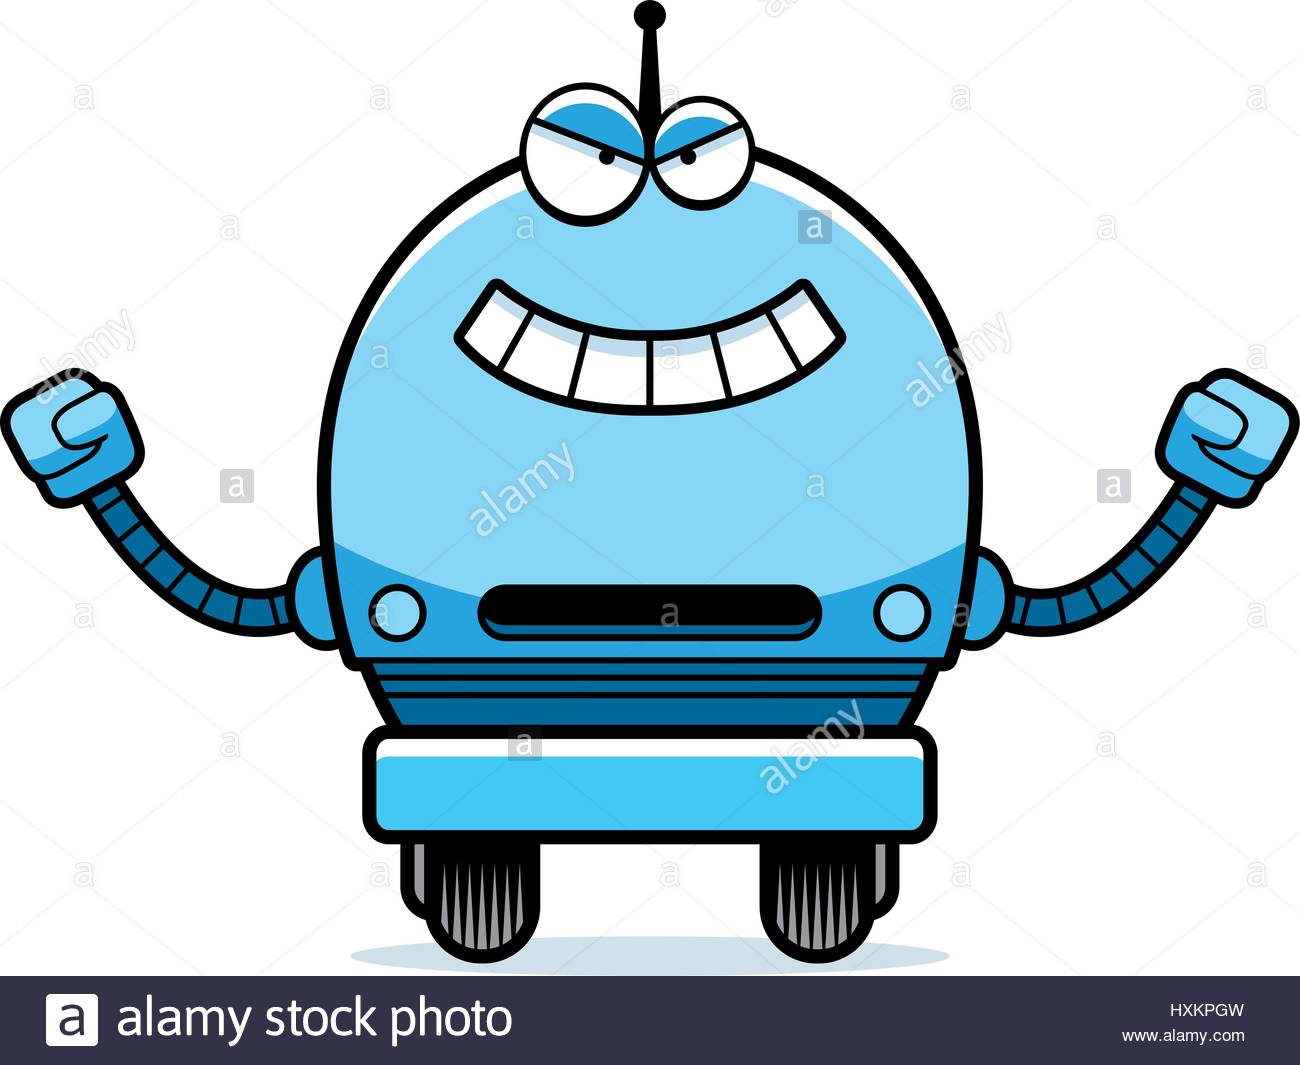 1300x1065 A Cartoon Illustration Of An Evil Looking Male Blue Robot Stock